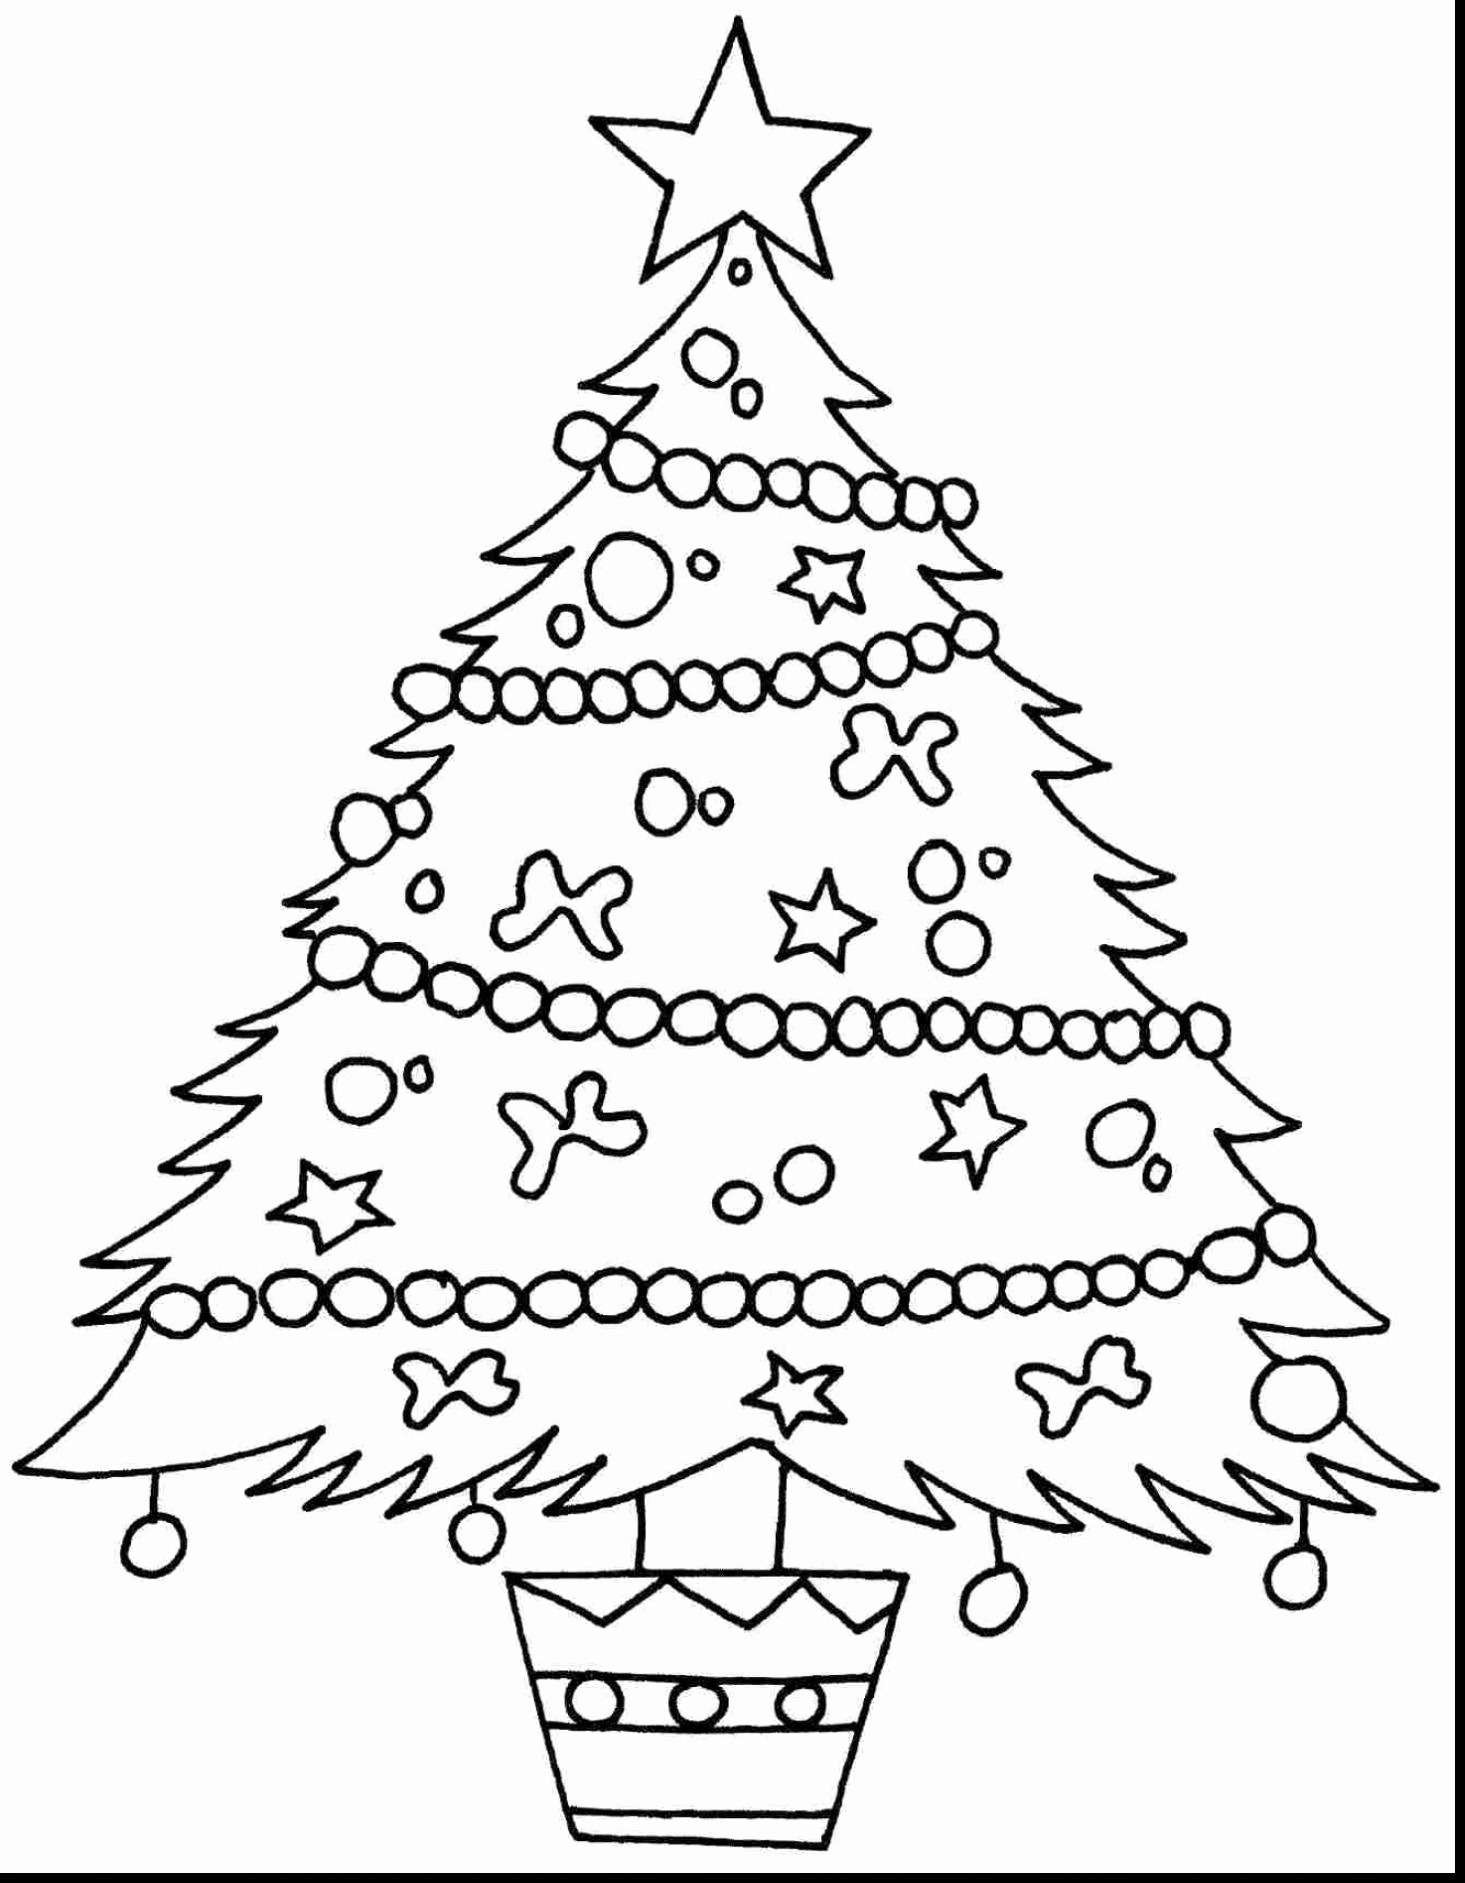 Christmas Tree Coloring Pages Printable With Giant Page For Kids